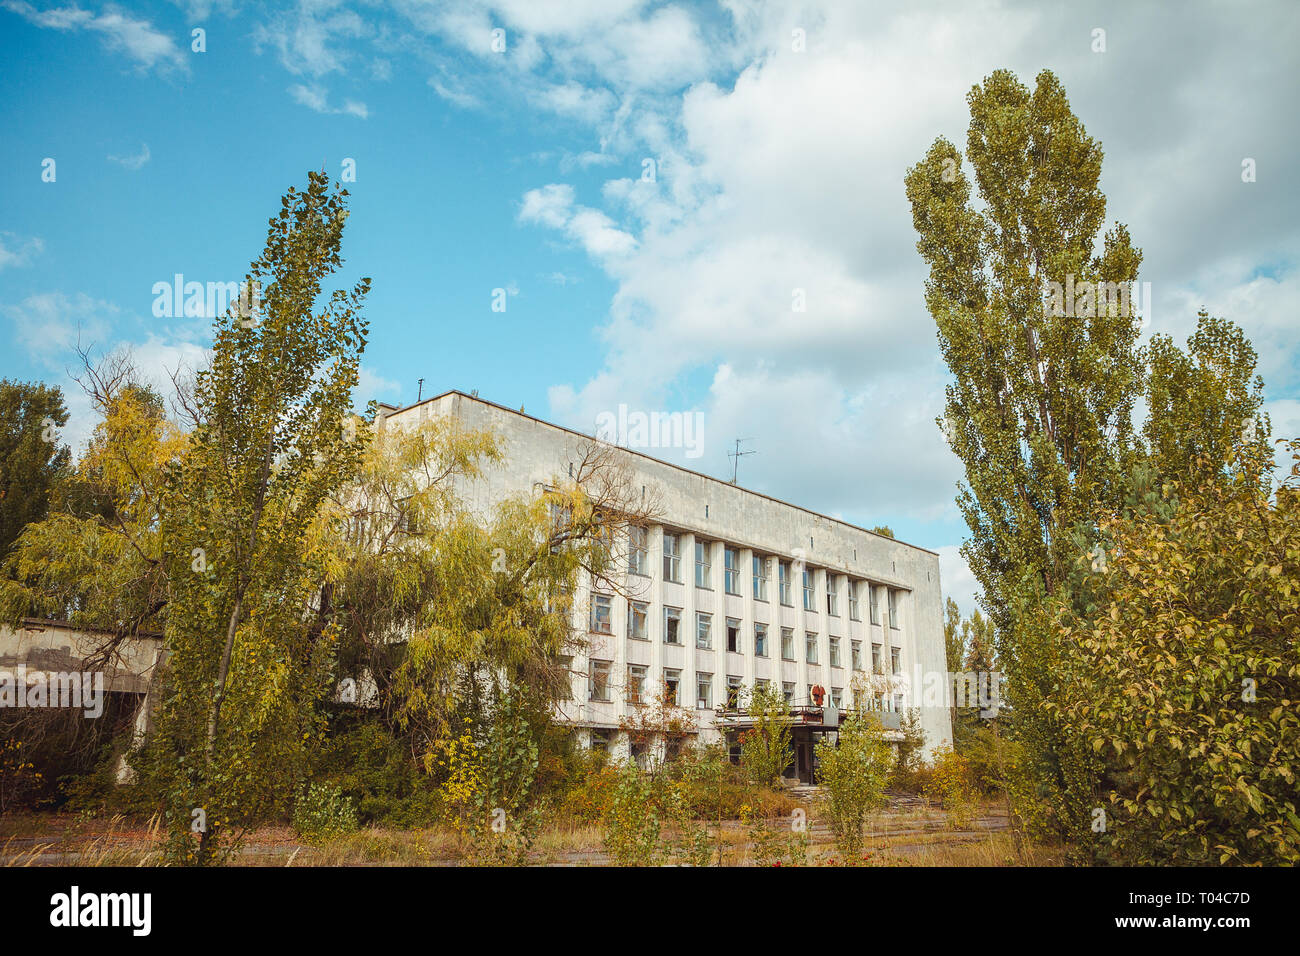 Buildings and streets in Chornobyl exclusion zone. Radioactive zone in Pripyat city - abandoned ghost town. Chernobyl history of catastrophe. Lost - Stock Image